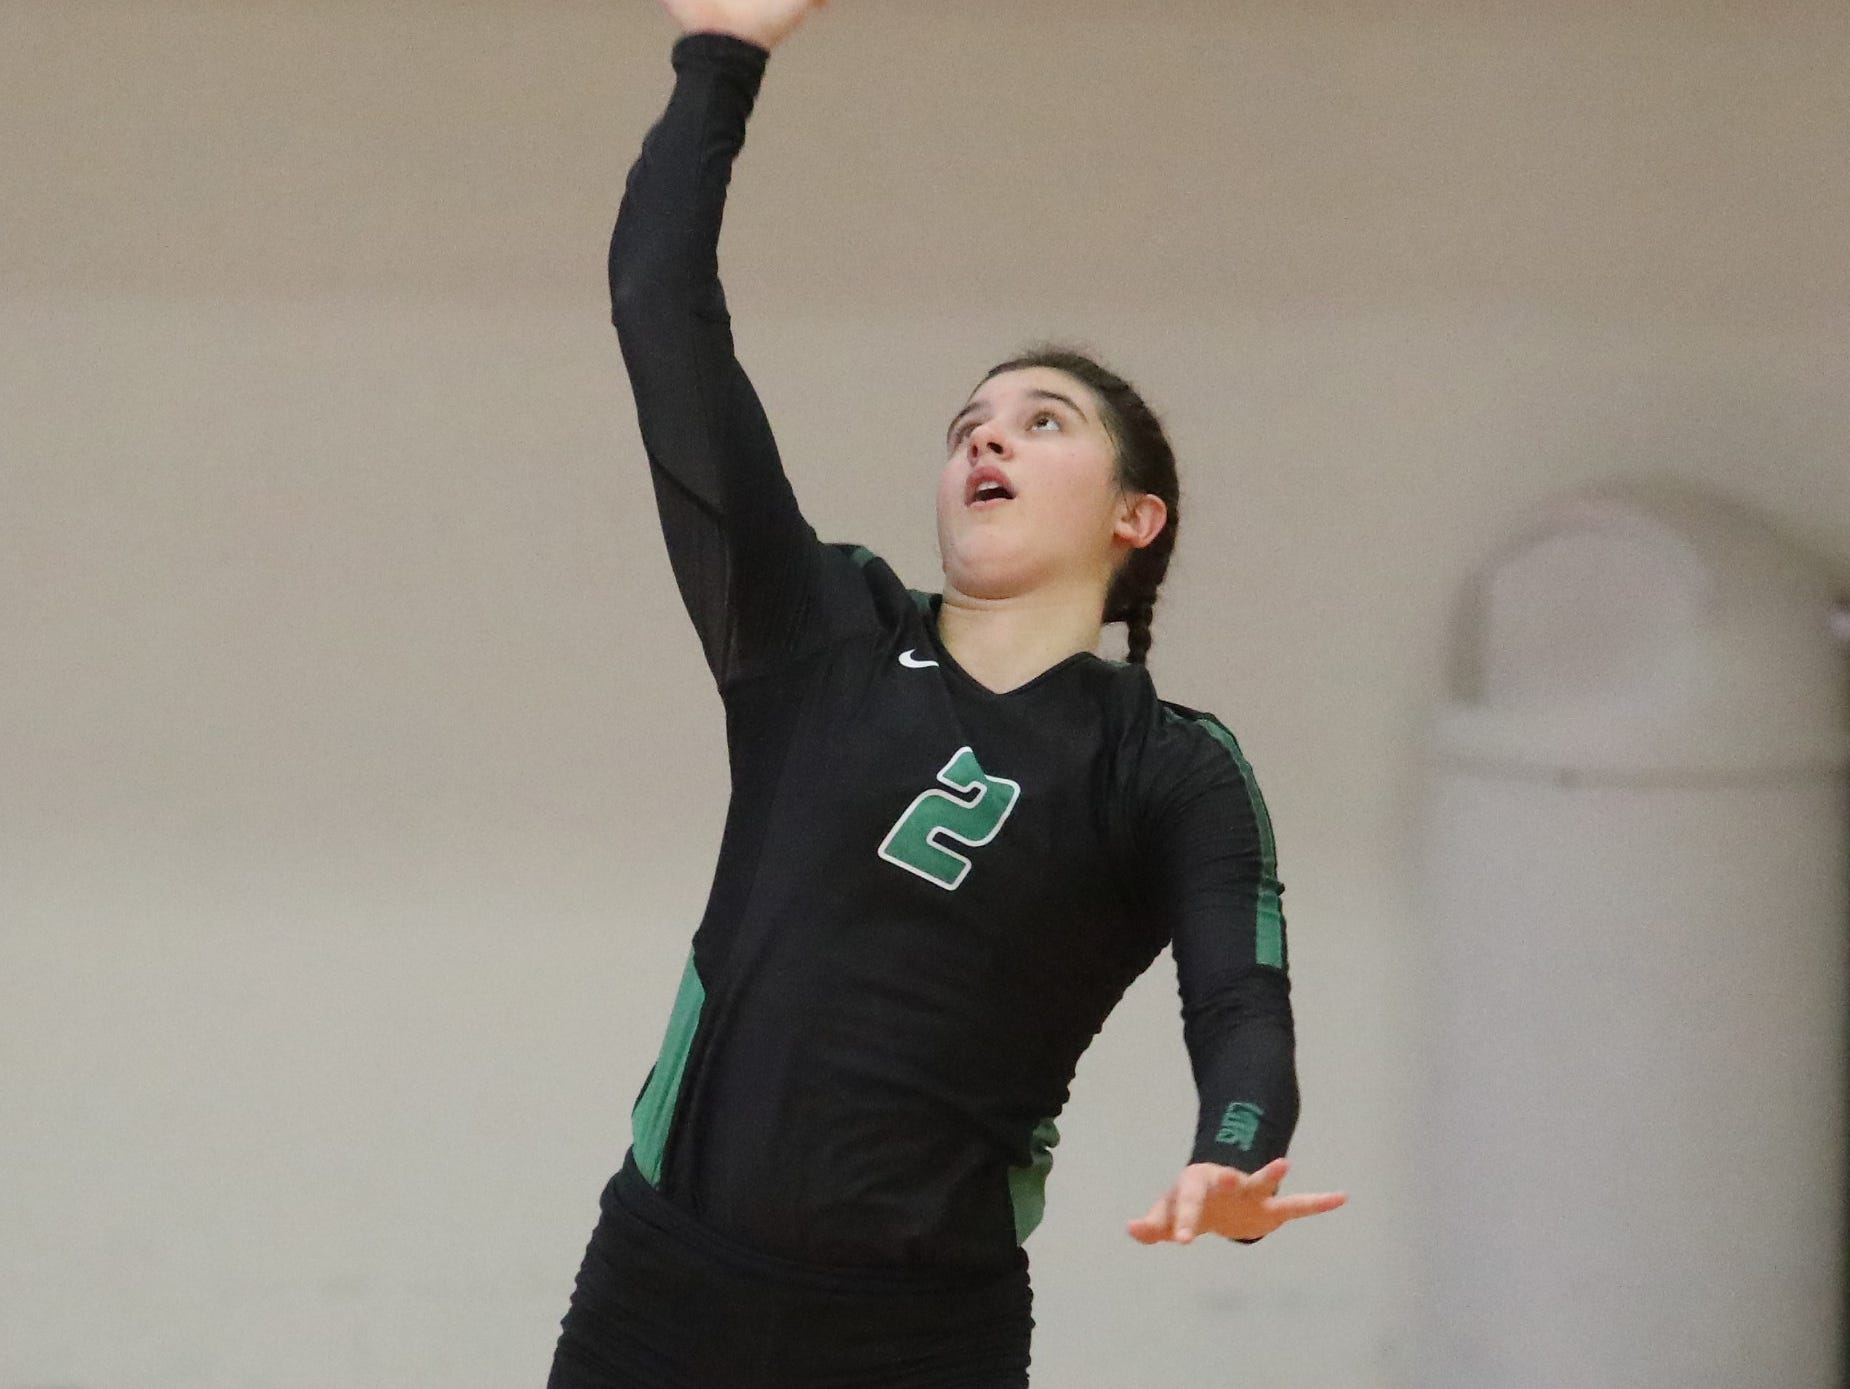 Ursuline player Peyton Breissinger serves during the Lions win the regional championship match against Mount Notre Dame. Saturday, Nov. 3,2018.